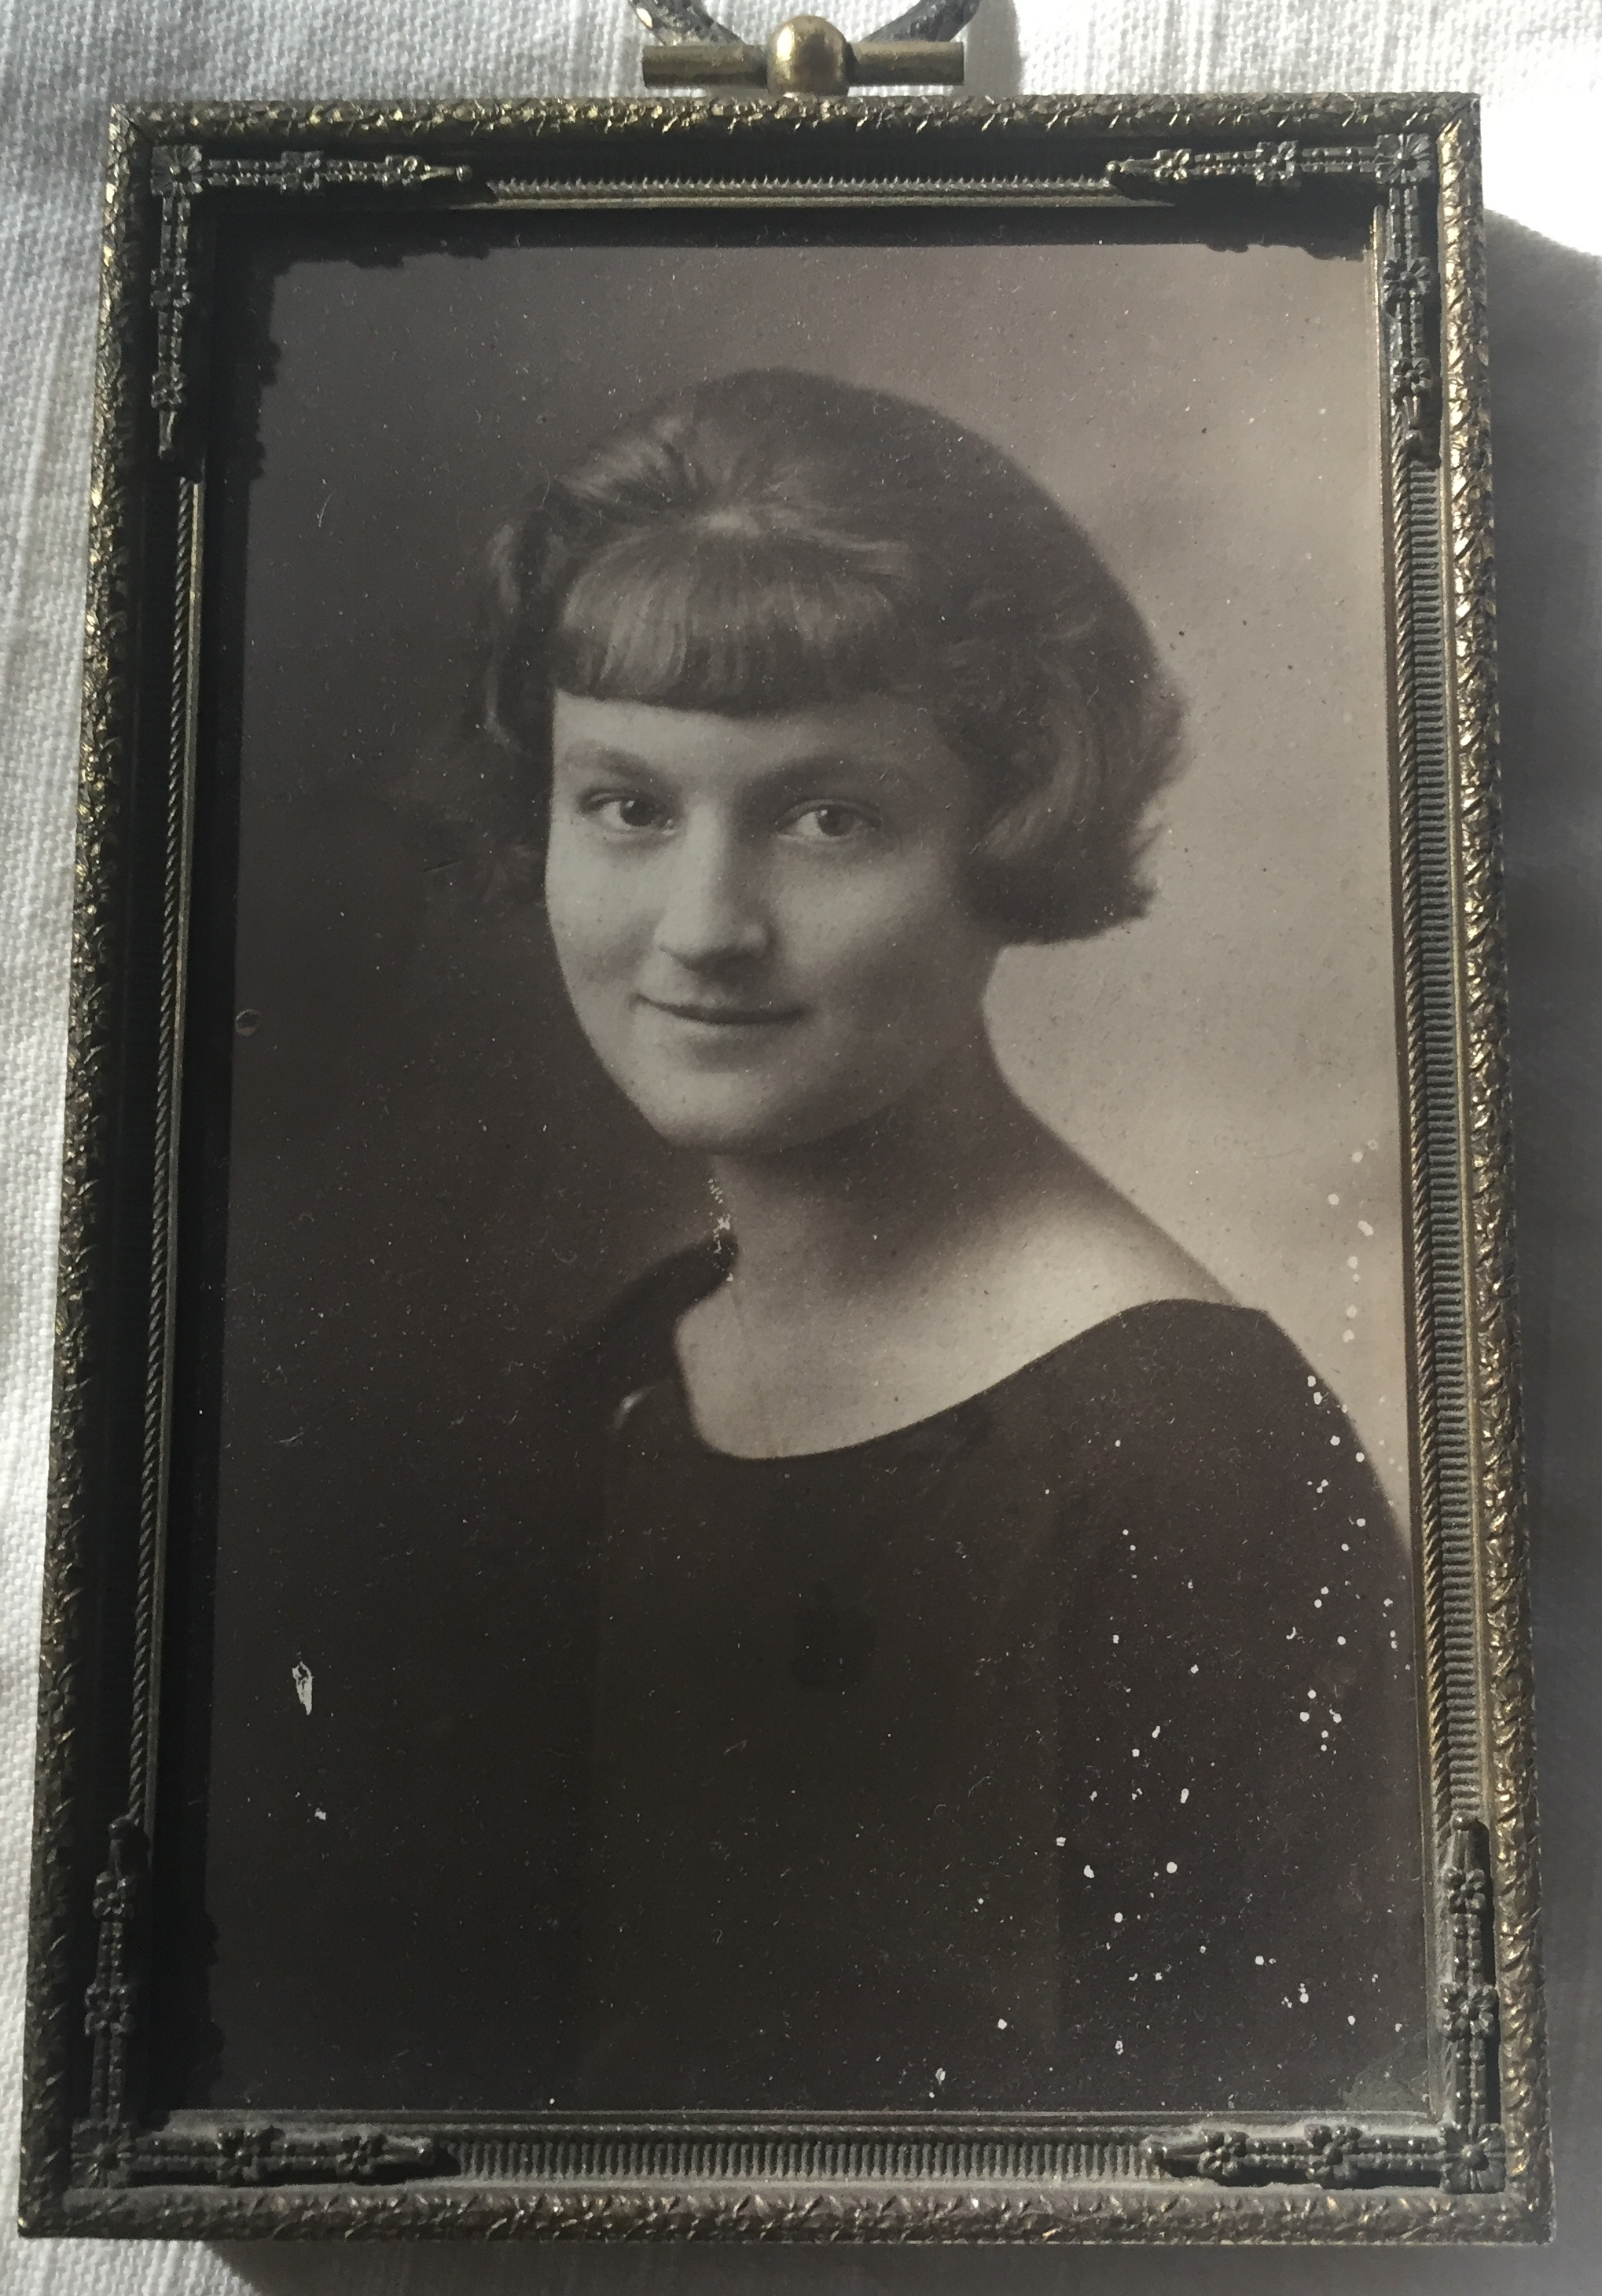 THE HIGH SCHOOL PHOTOGRAPH of Agnes Baron that she gave to Ken and Len Ceder. She graduated high school in 1923. (Source: Len Ceder)